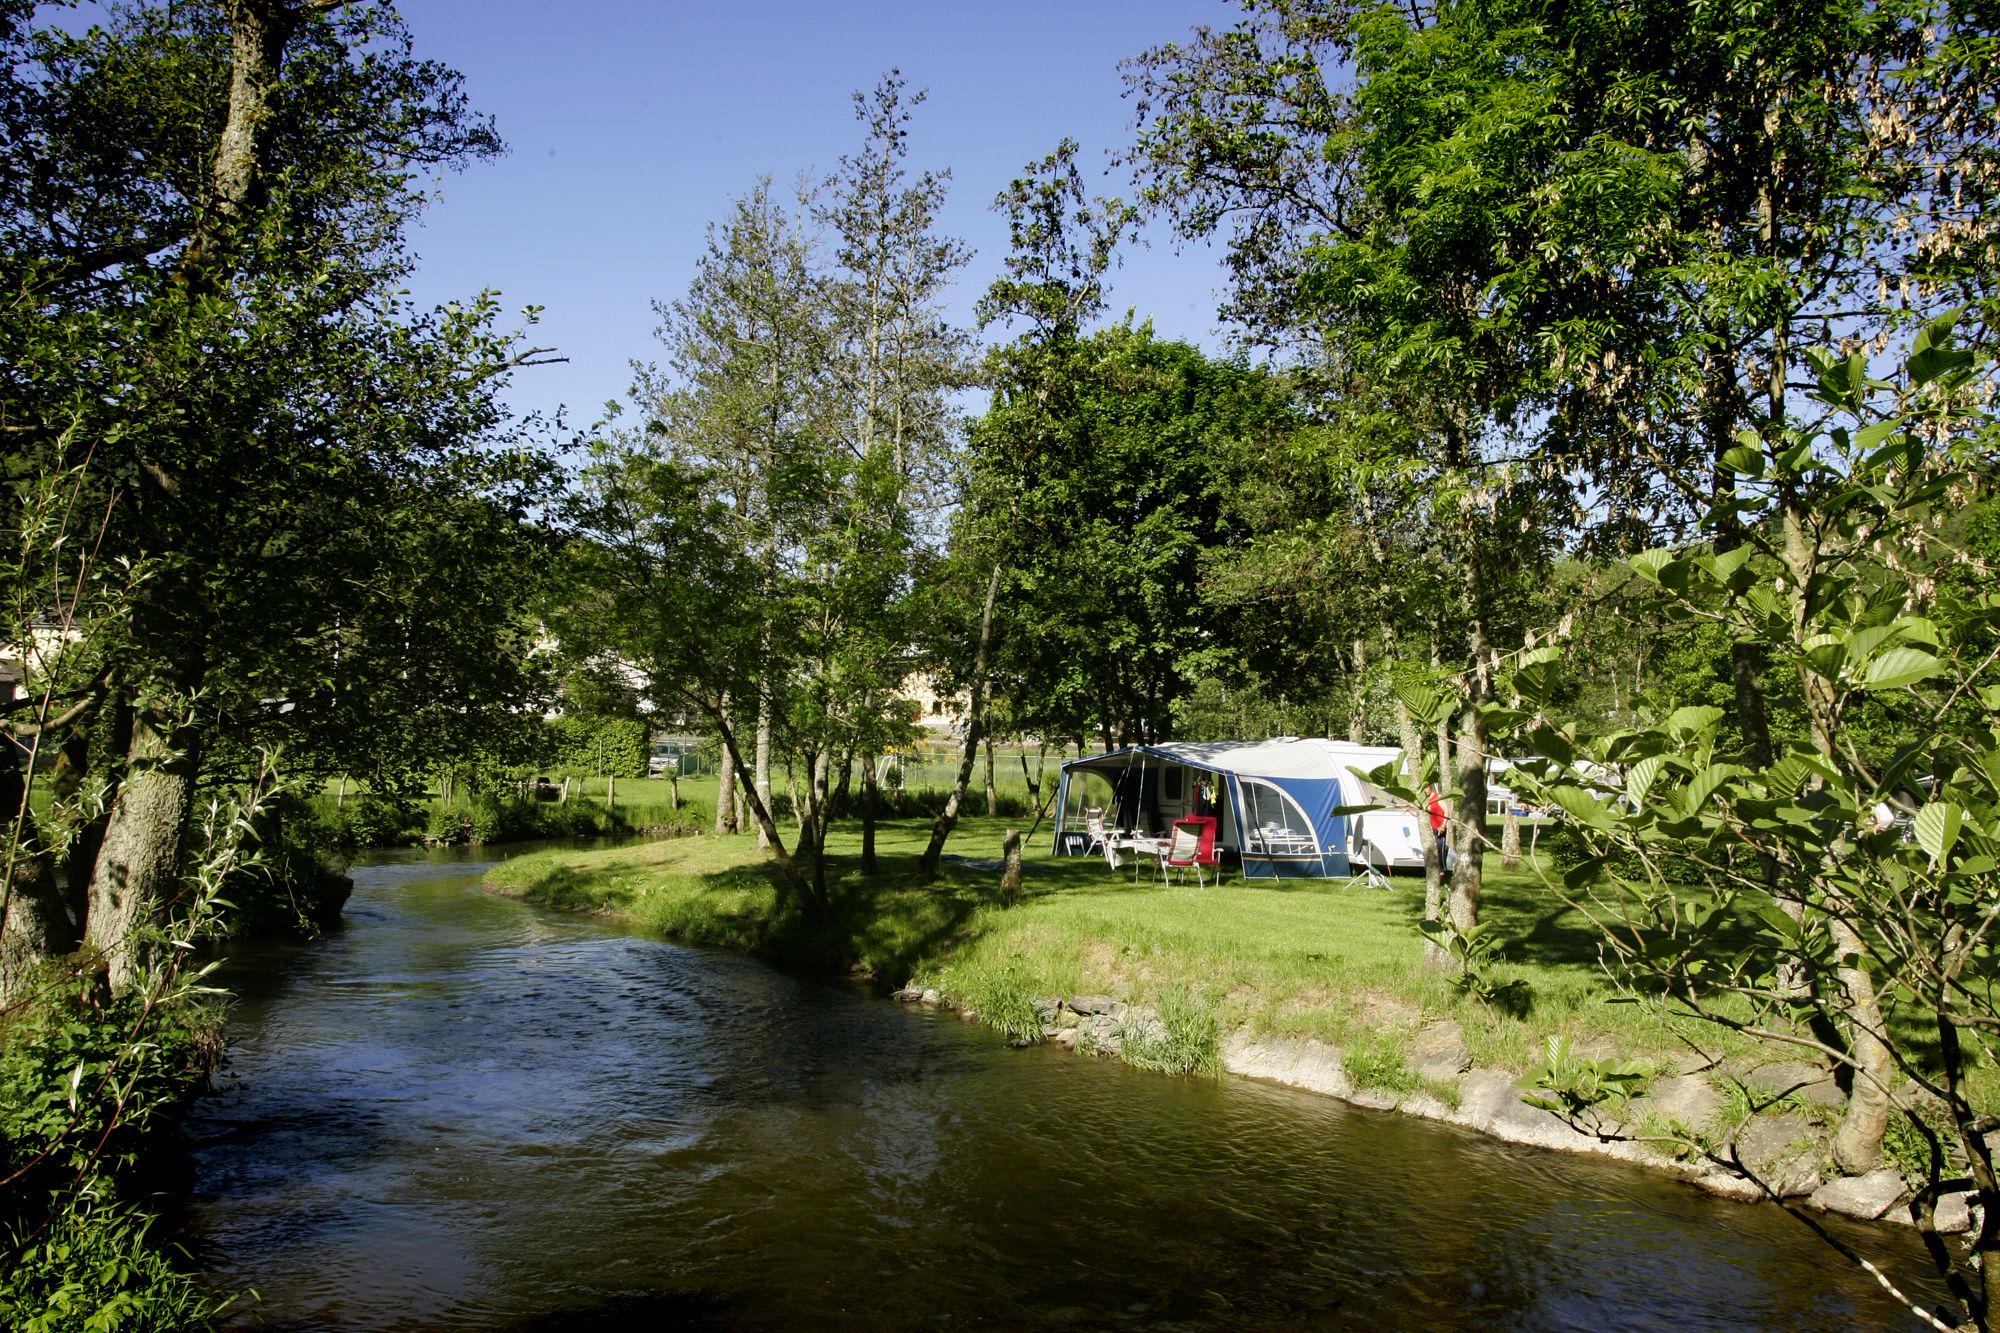 Campsites in Luxemborug – The Best Camping in Luxemborug